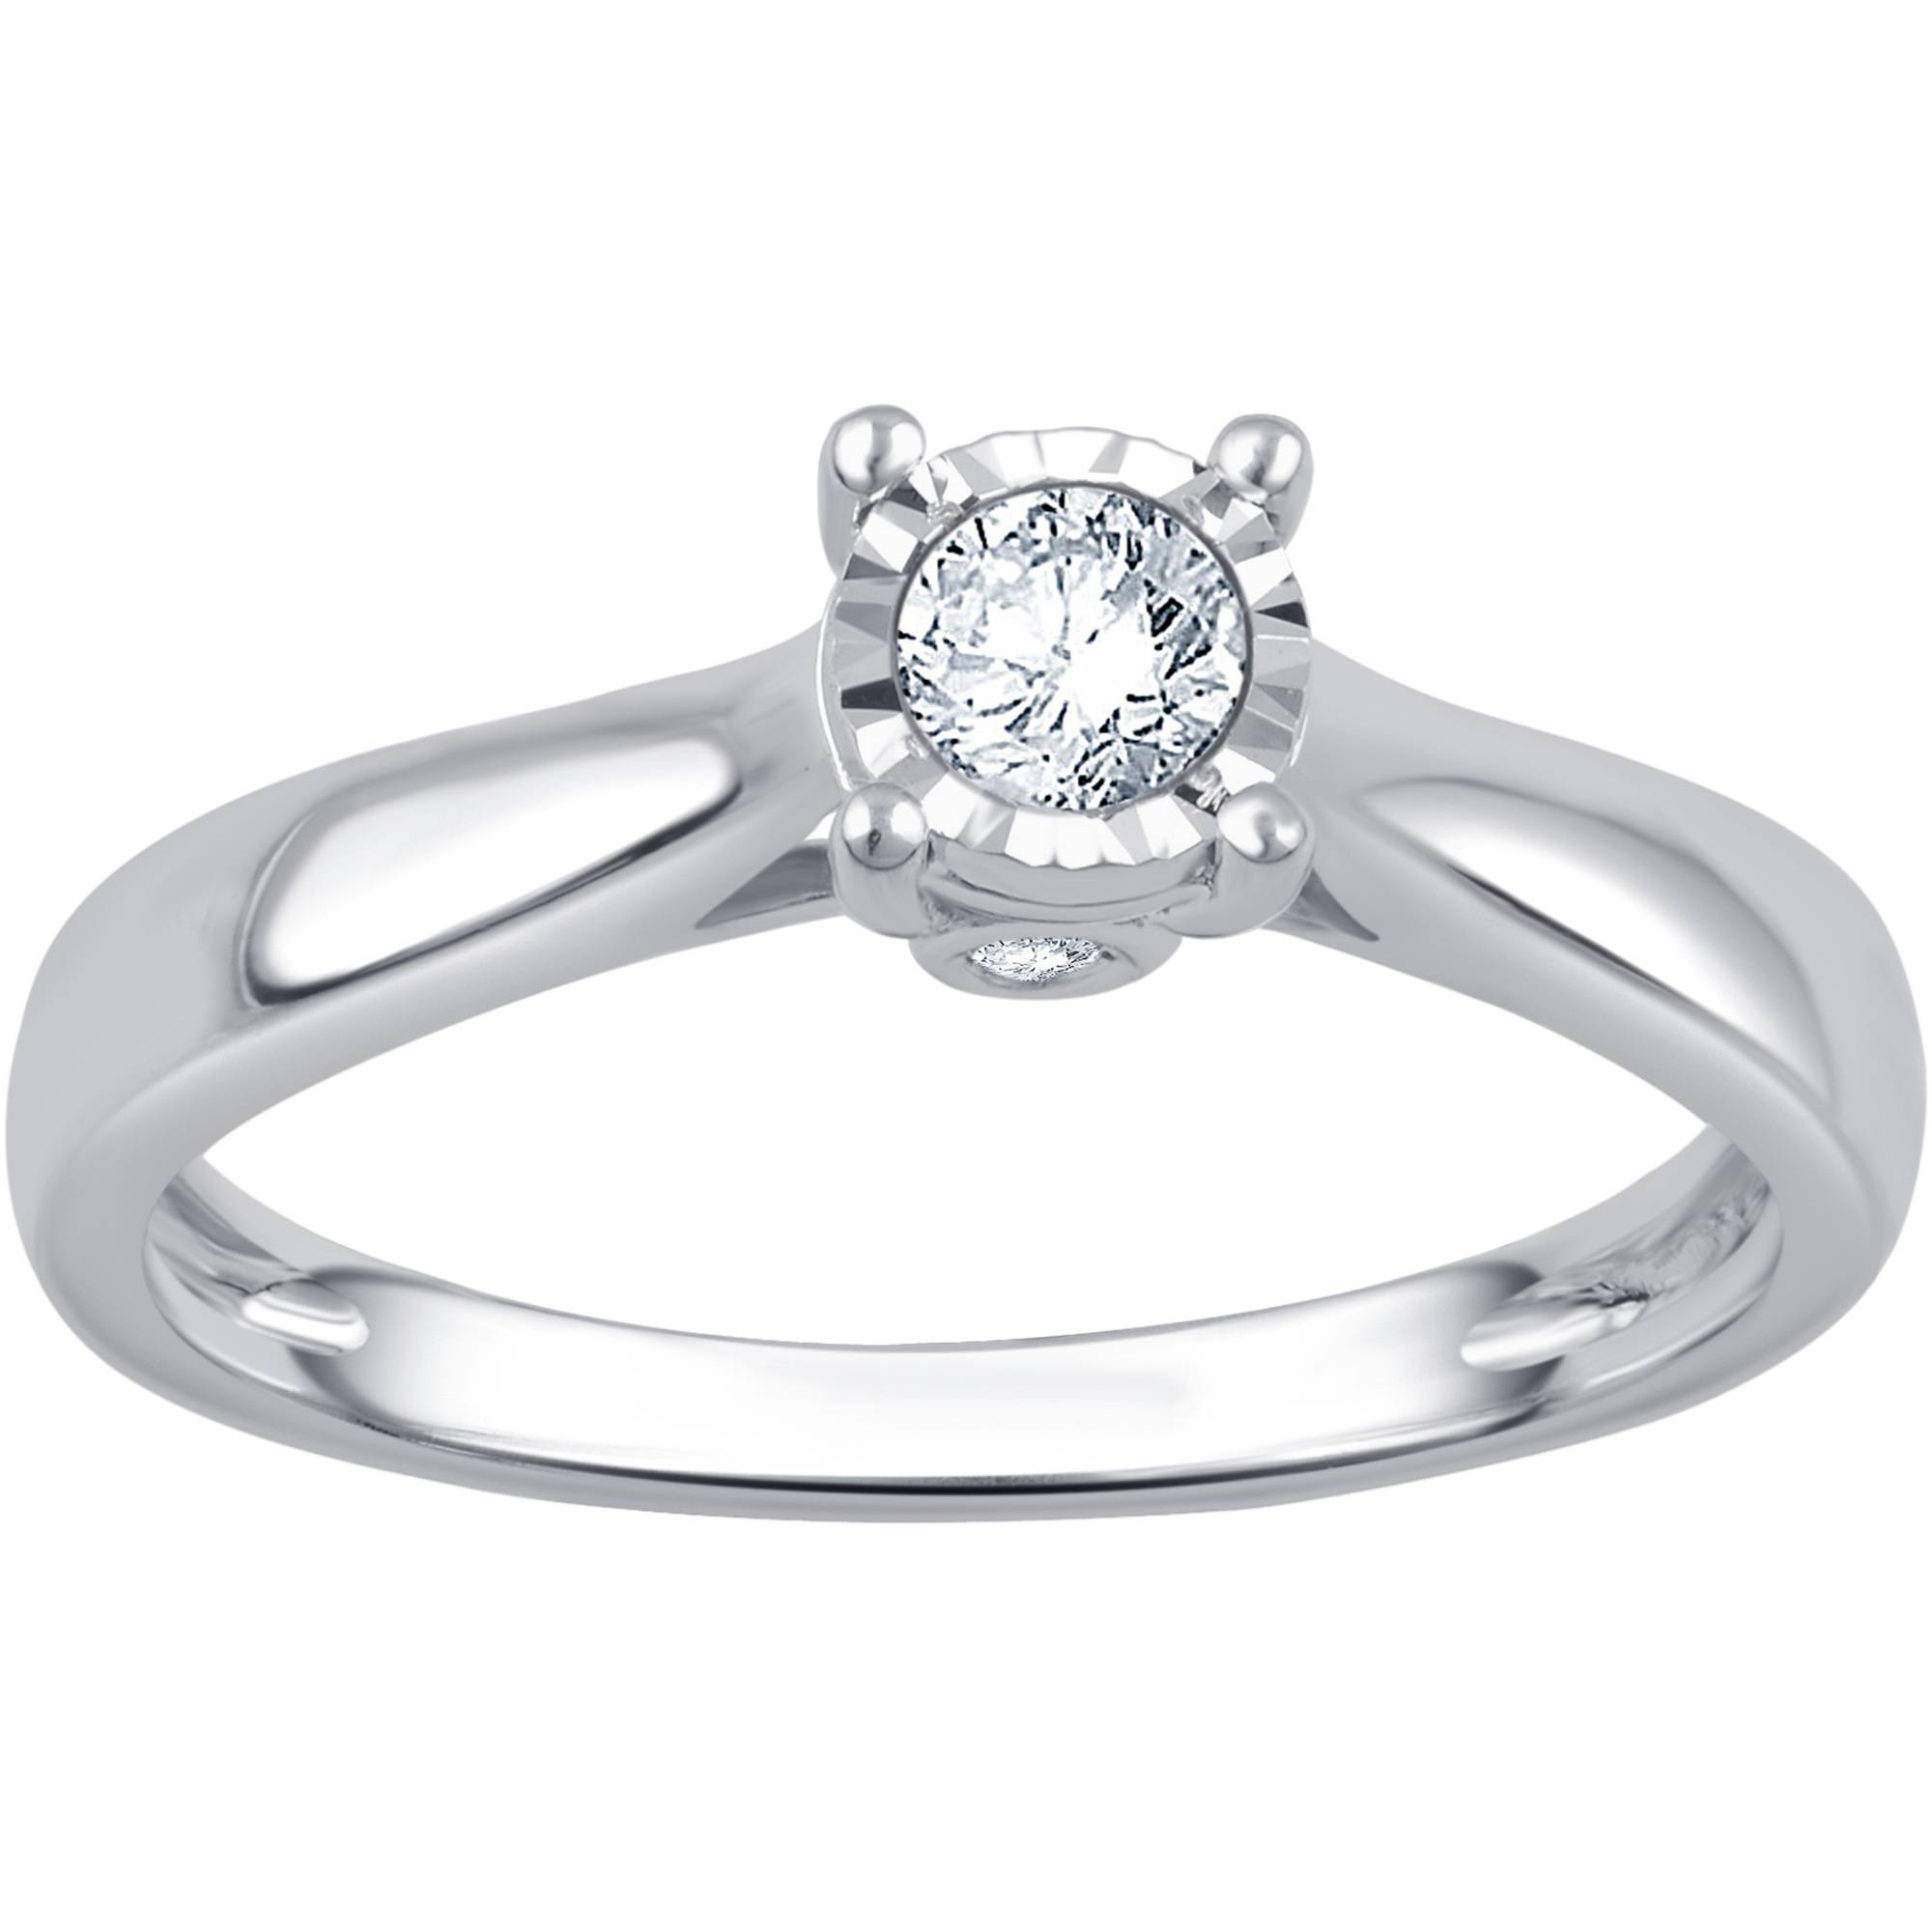 ailov 0.5 Ct Classic Round Solitaire Engagement Promise Ring Brilliant Cut Zircon Open Cathedral Setting